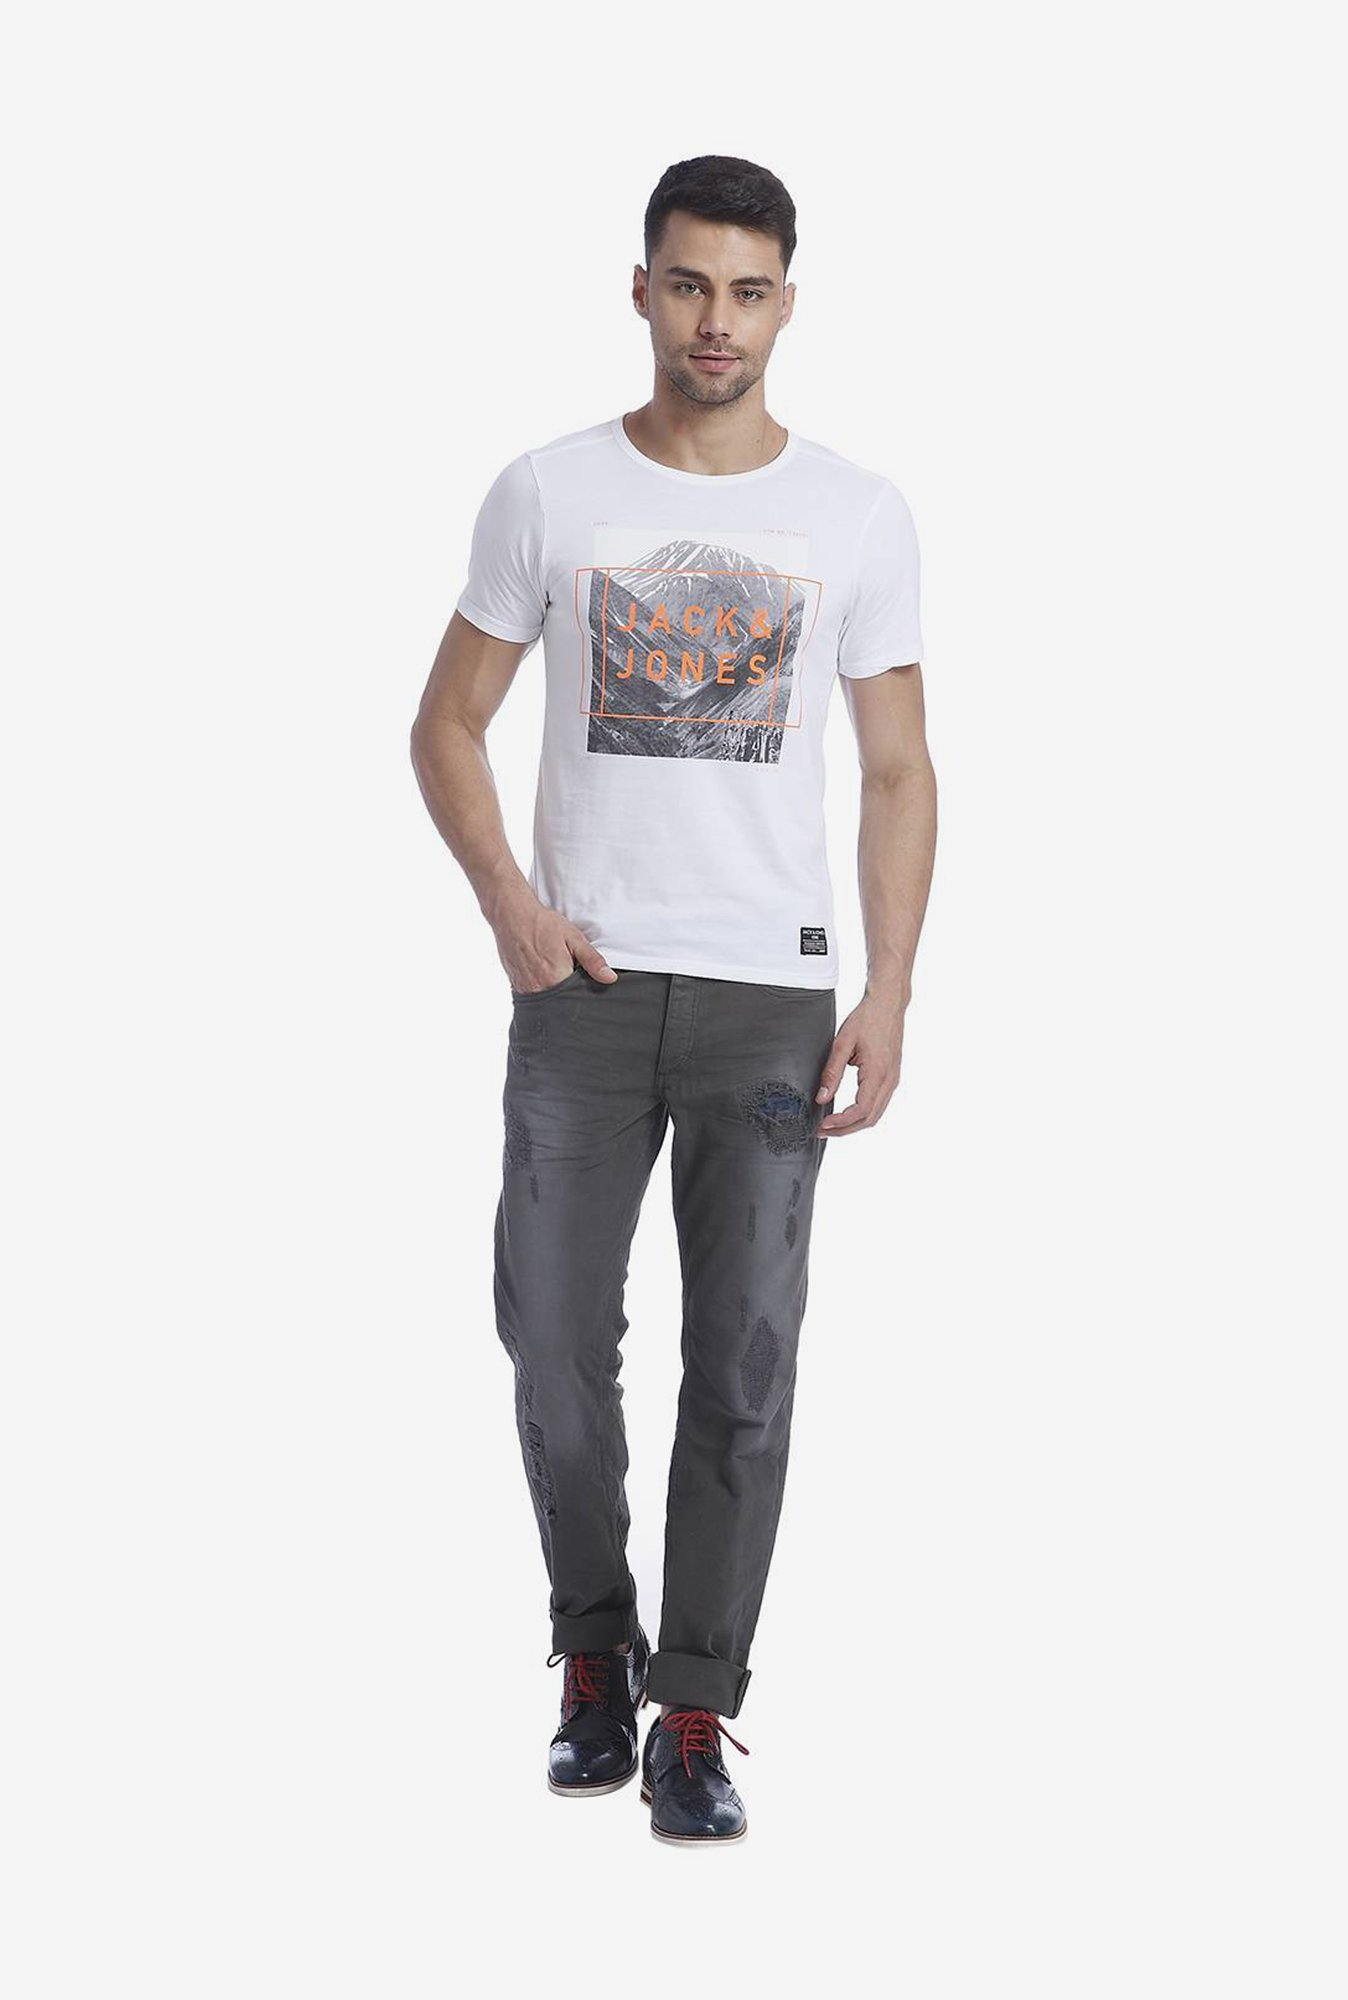 Jack & Jones White Graphic T Shirt